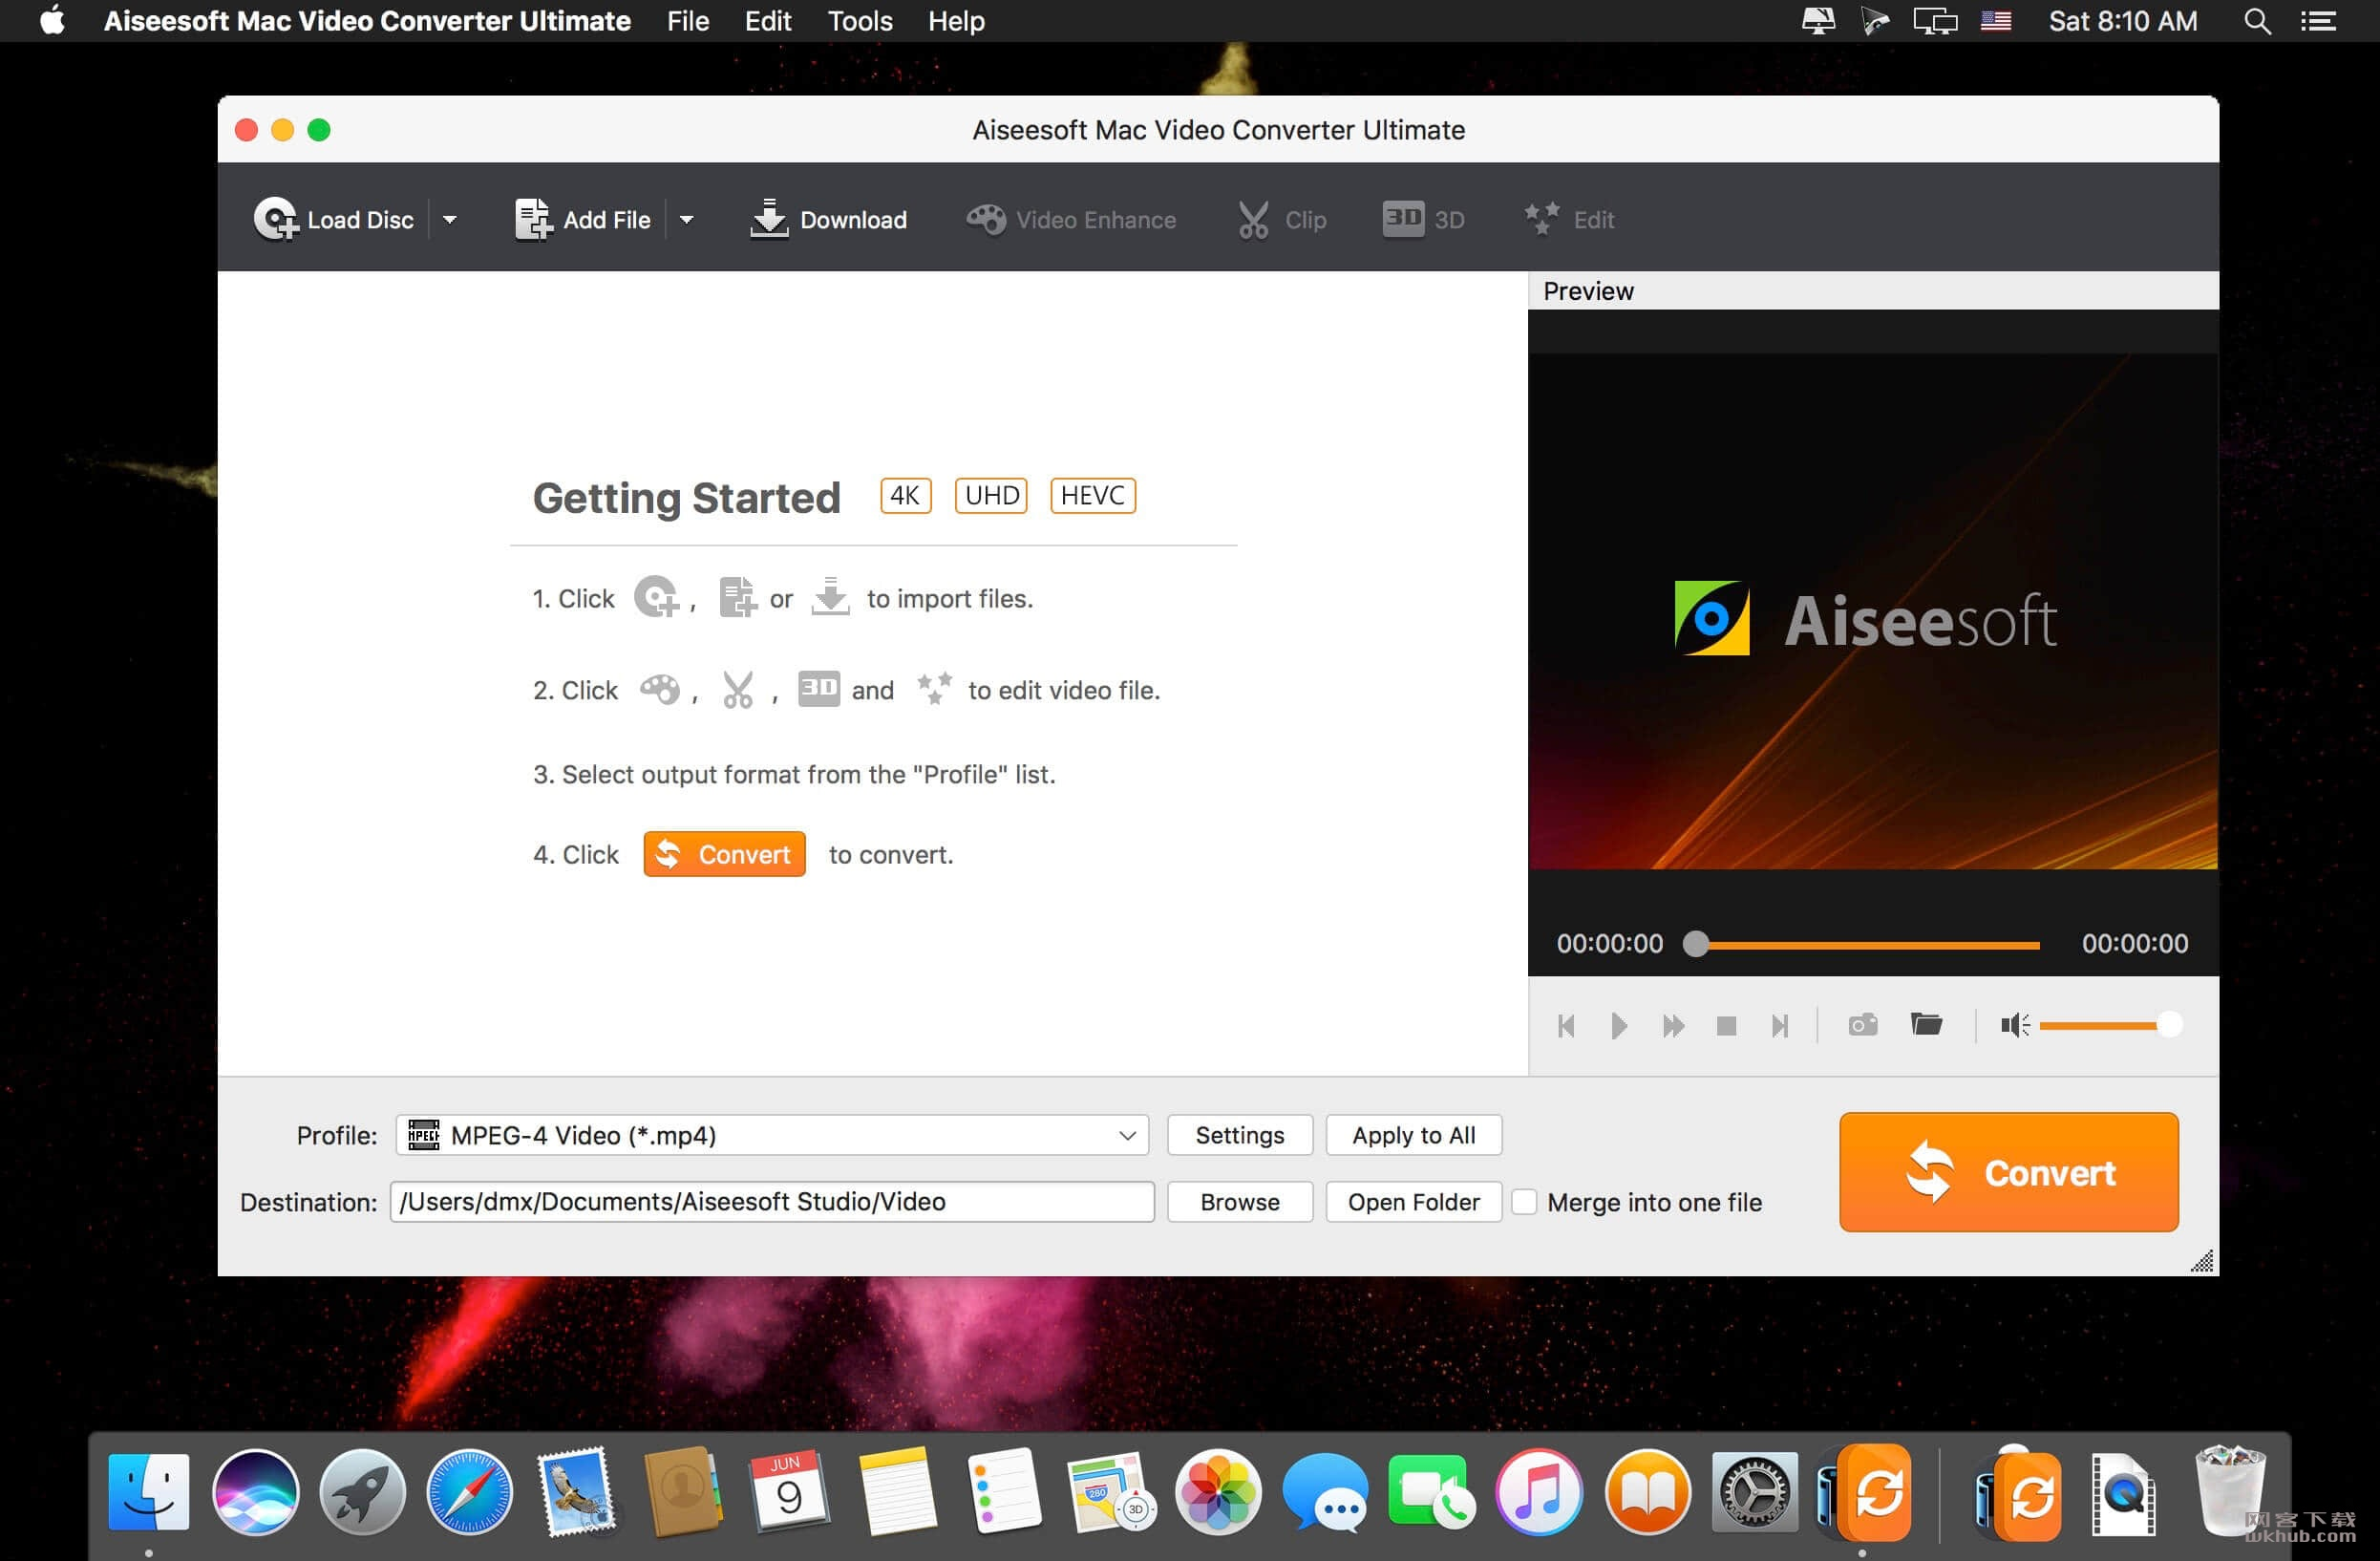 Aiseesoft Mac Video Converter Ultimate 9.2.50.90530 优秀的多功能视频转换器